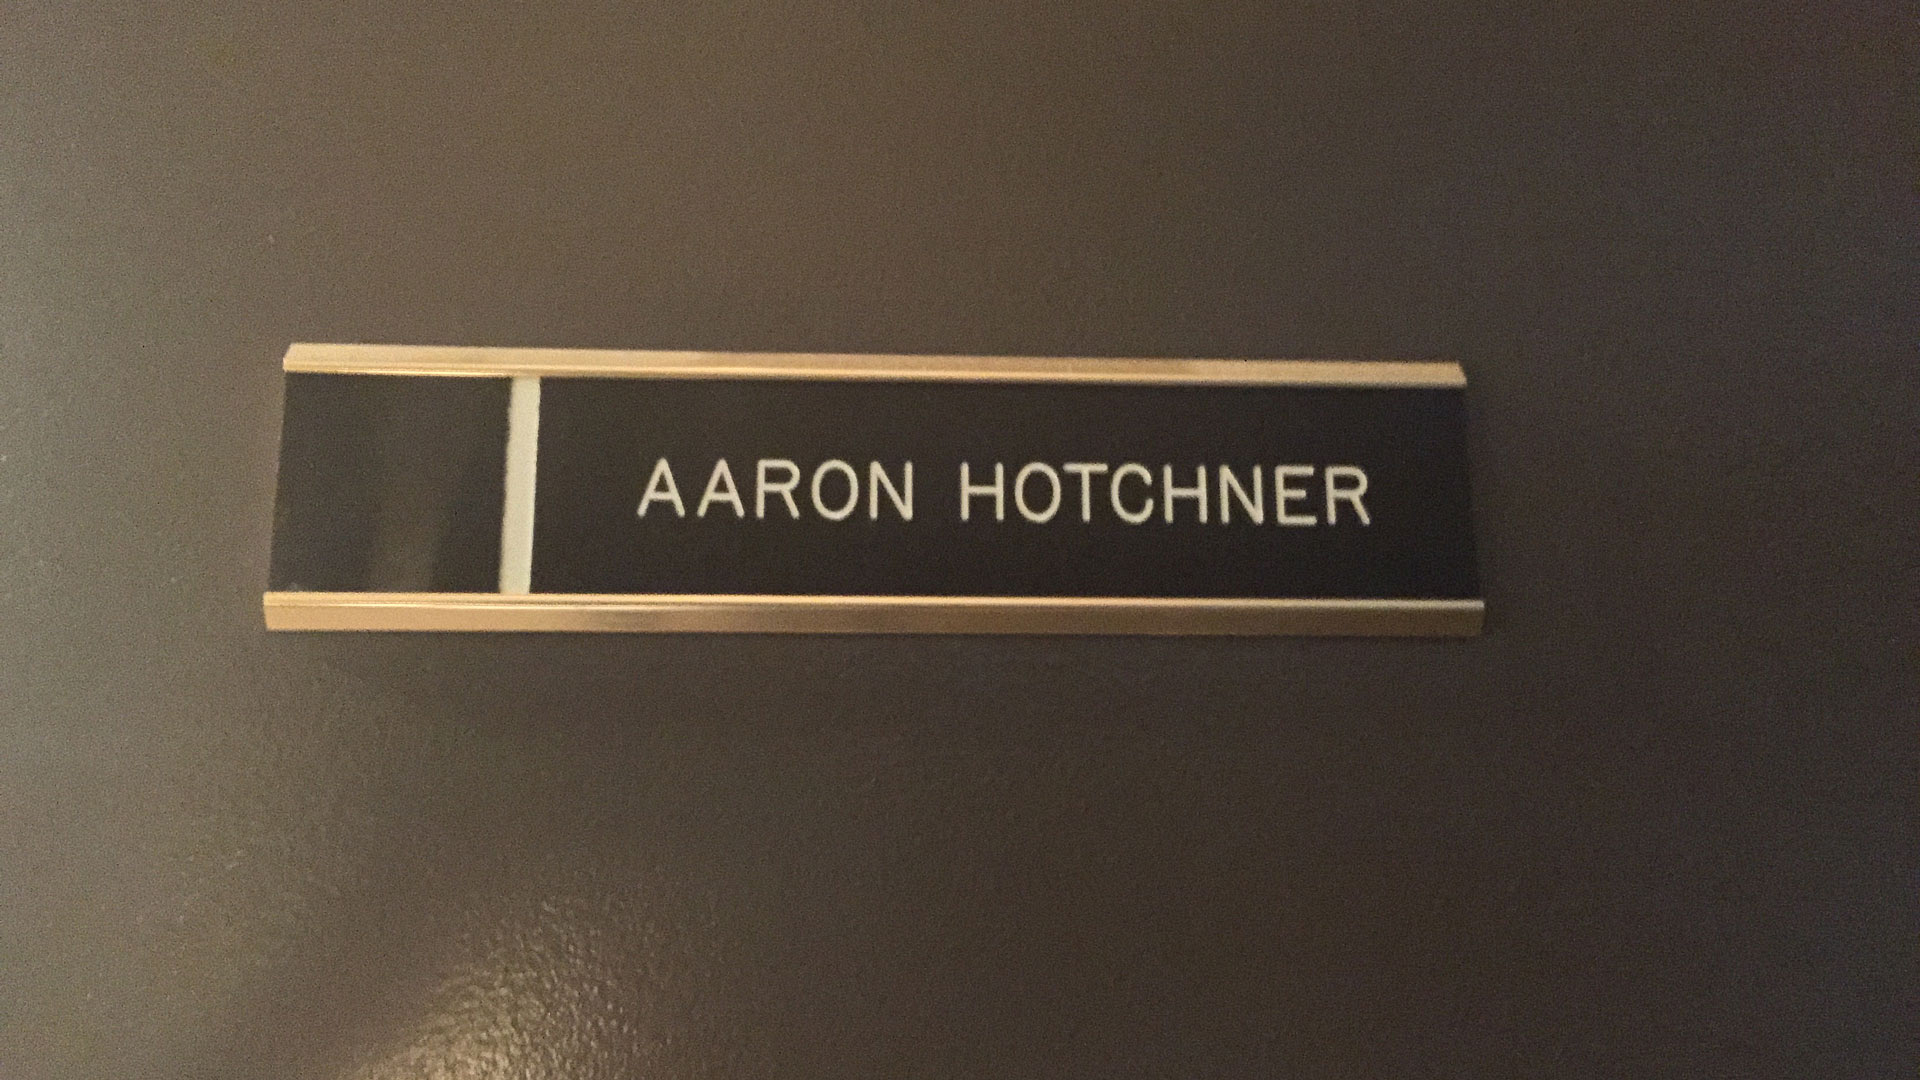 A closeup of SSA Aaron Hotchner's office door